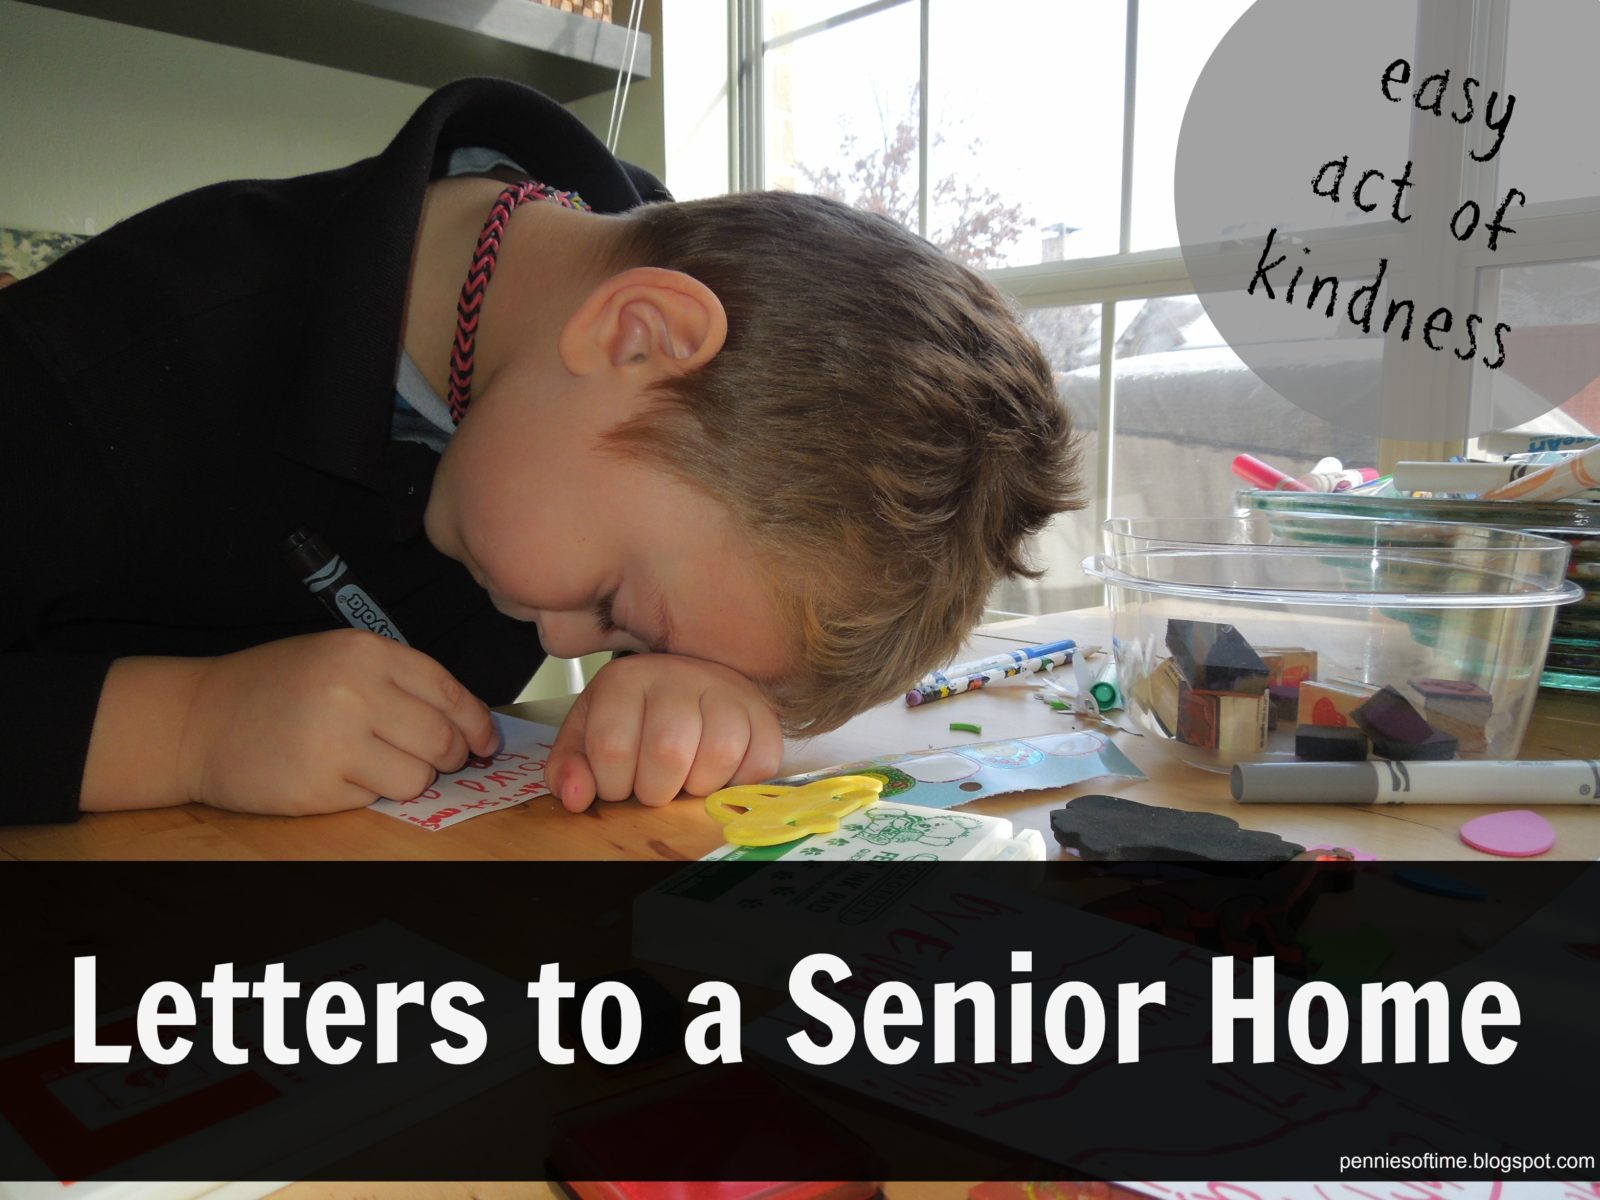 Crafts for the elderly in nursing homes -  Act Of Kindness Letters To A Senior Home